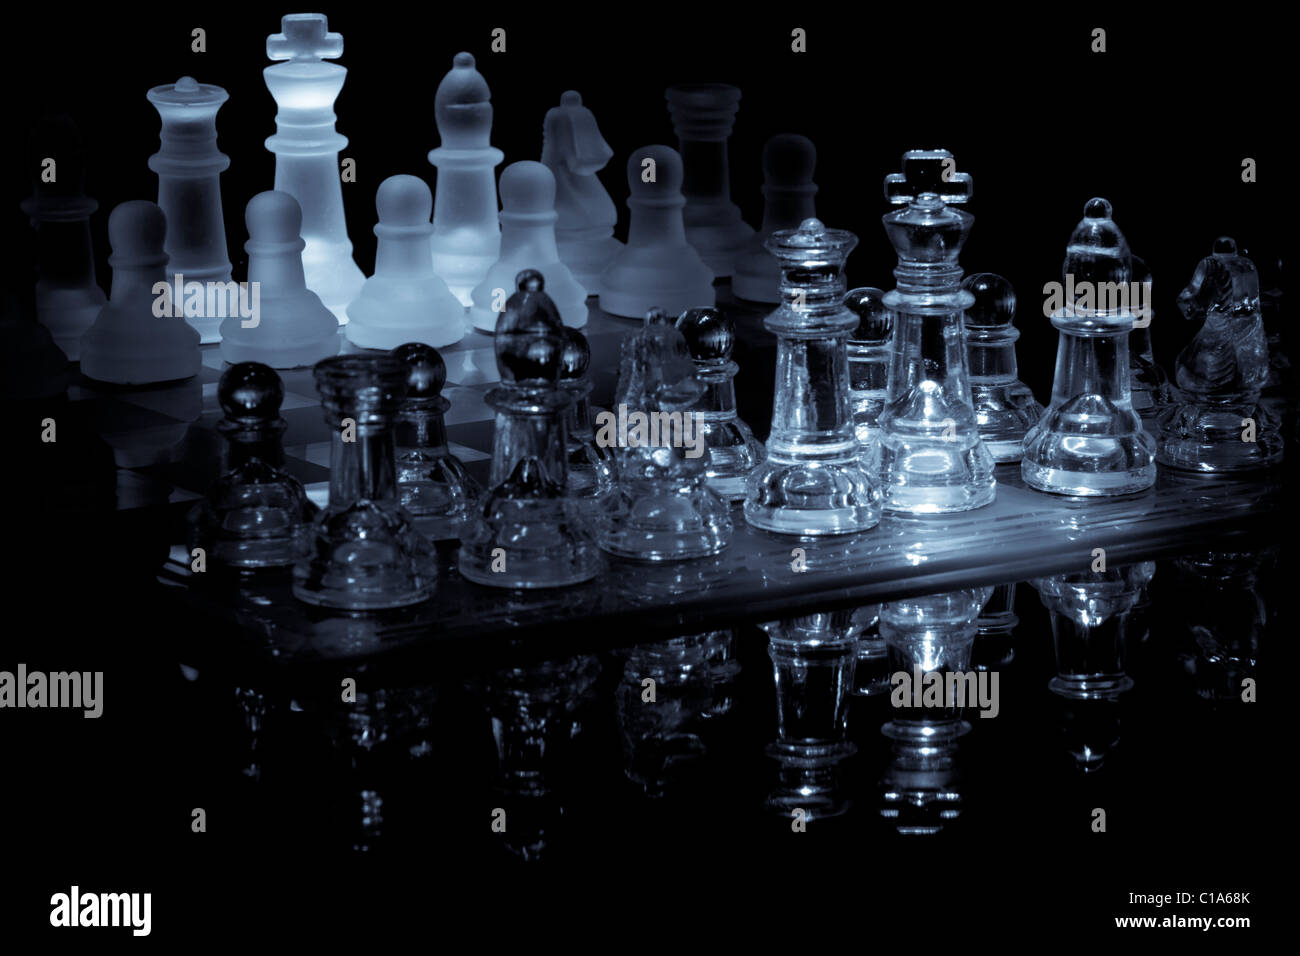 Glass Chessboard setup and awaiting move Stock Photo